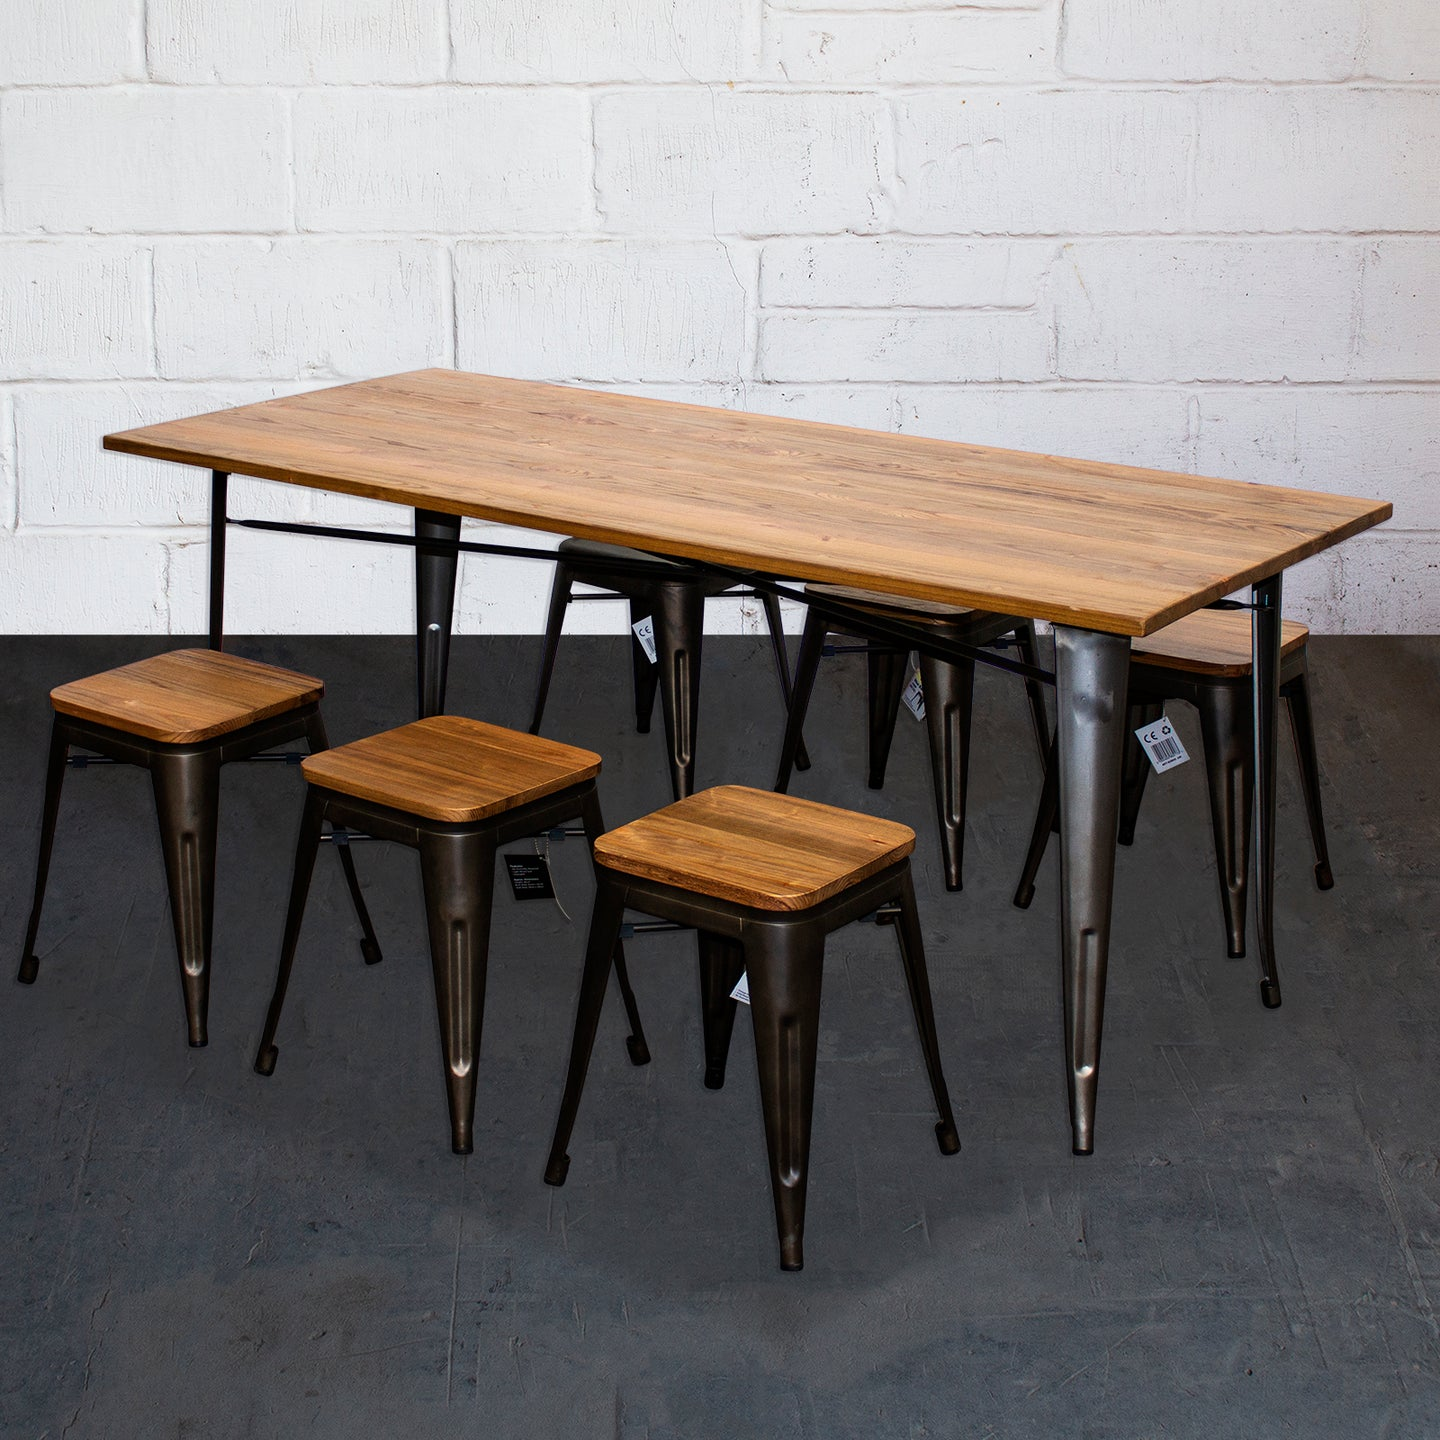 7PC Taranto Table & 6 Rho Stools Set - Gun Metal Grey